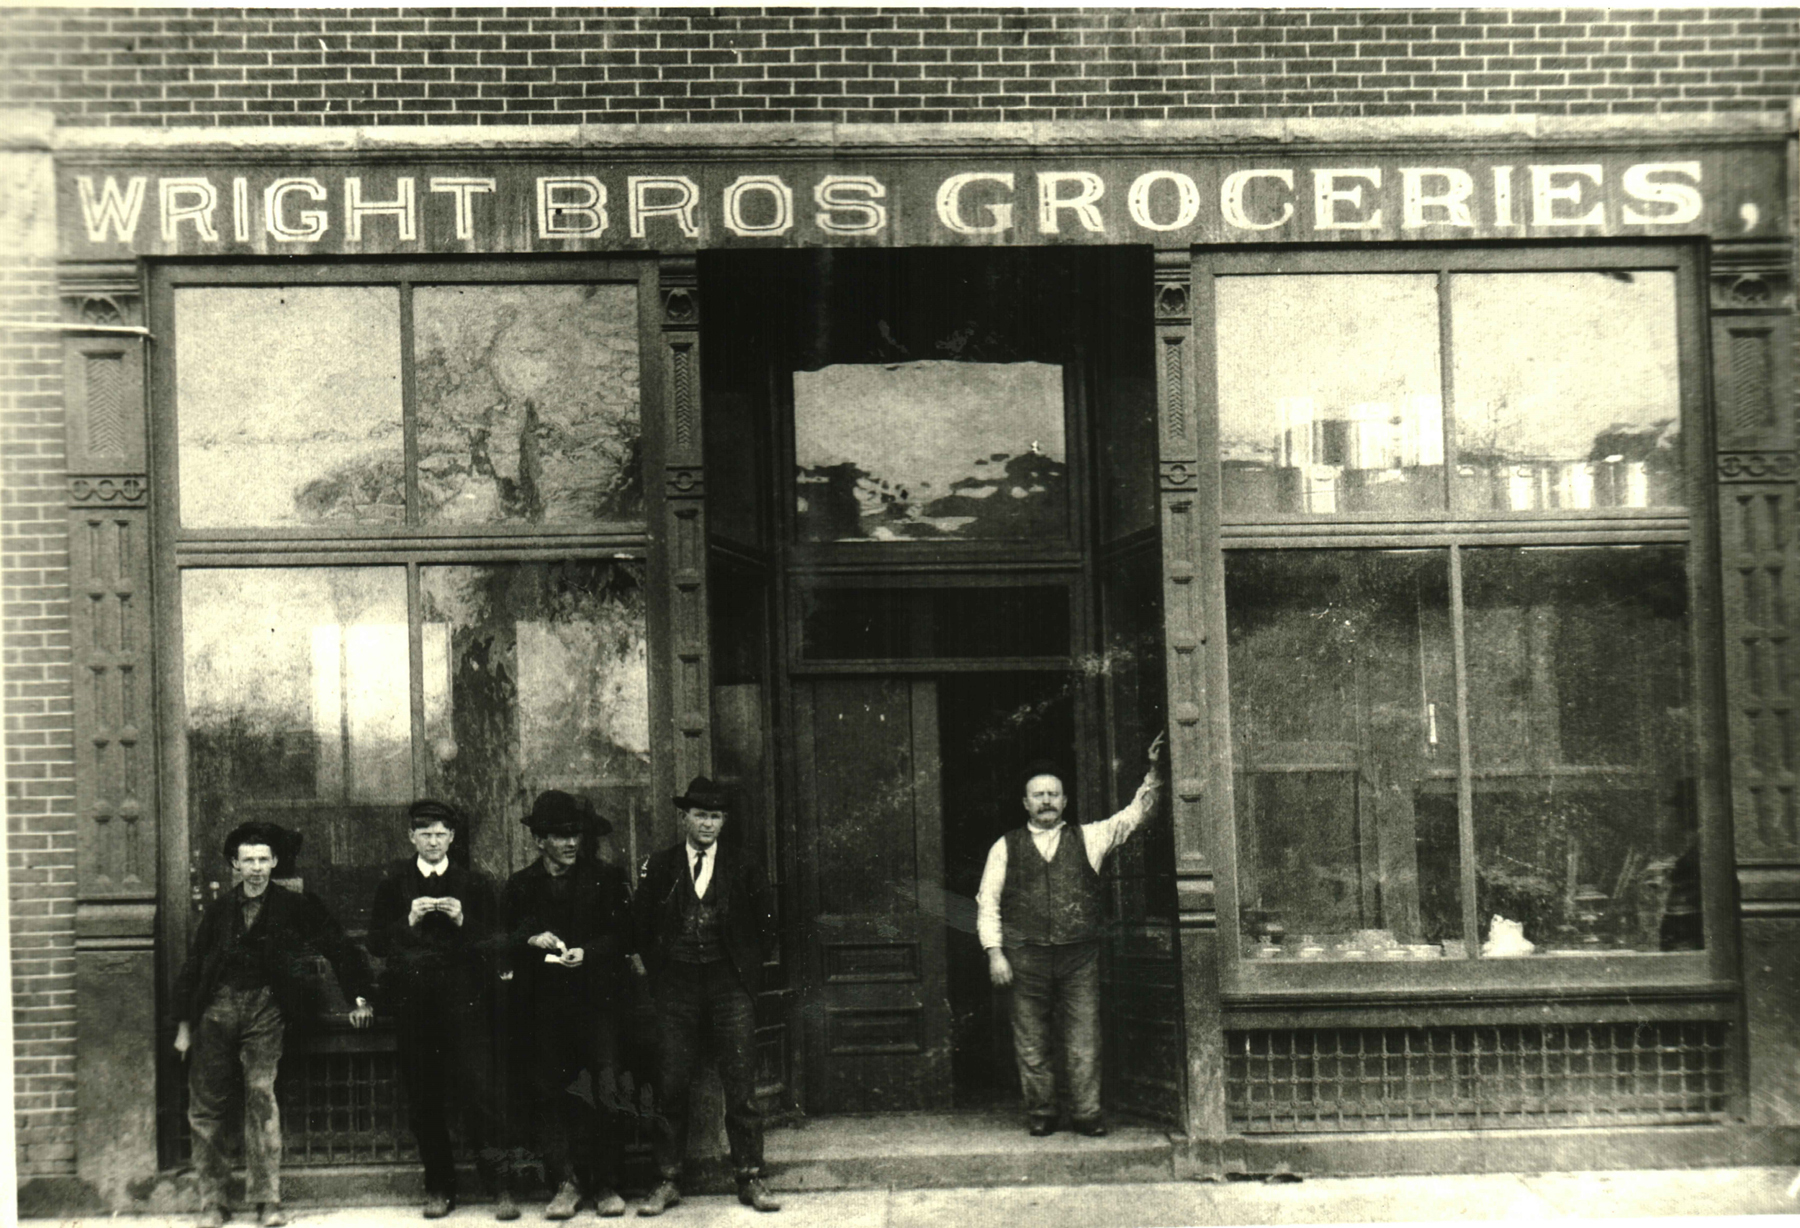 Wright Brothers storefront. In addition to groceries, the business sold dry goods, clothing, paint, wallpaper, and other products.